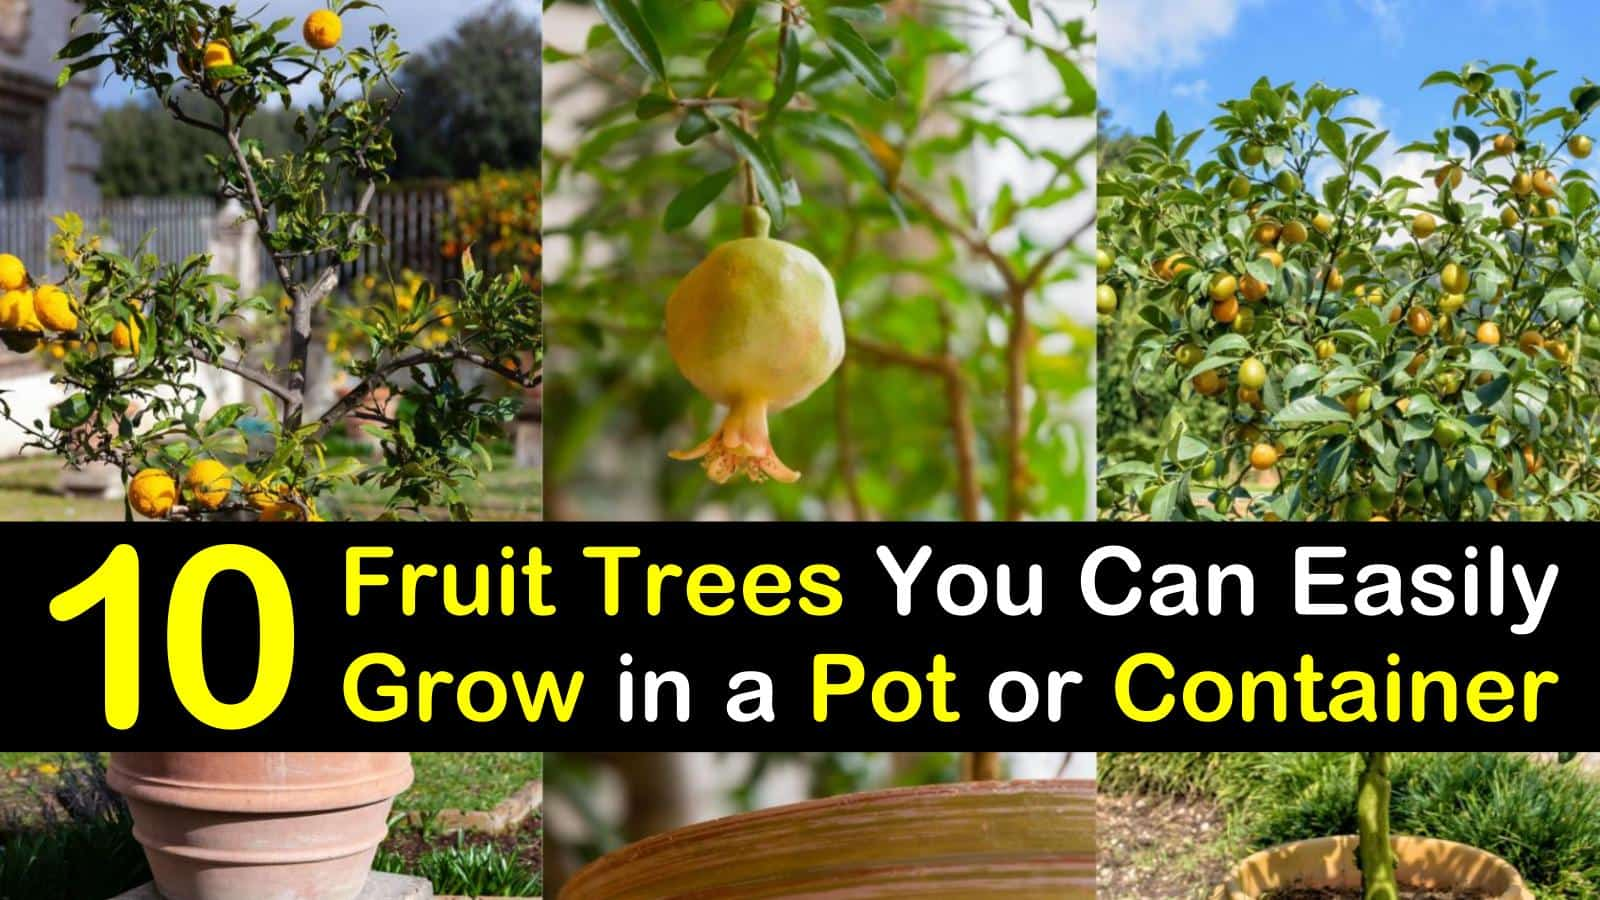 grow fruit trees in container titleimg1